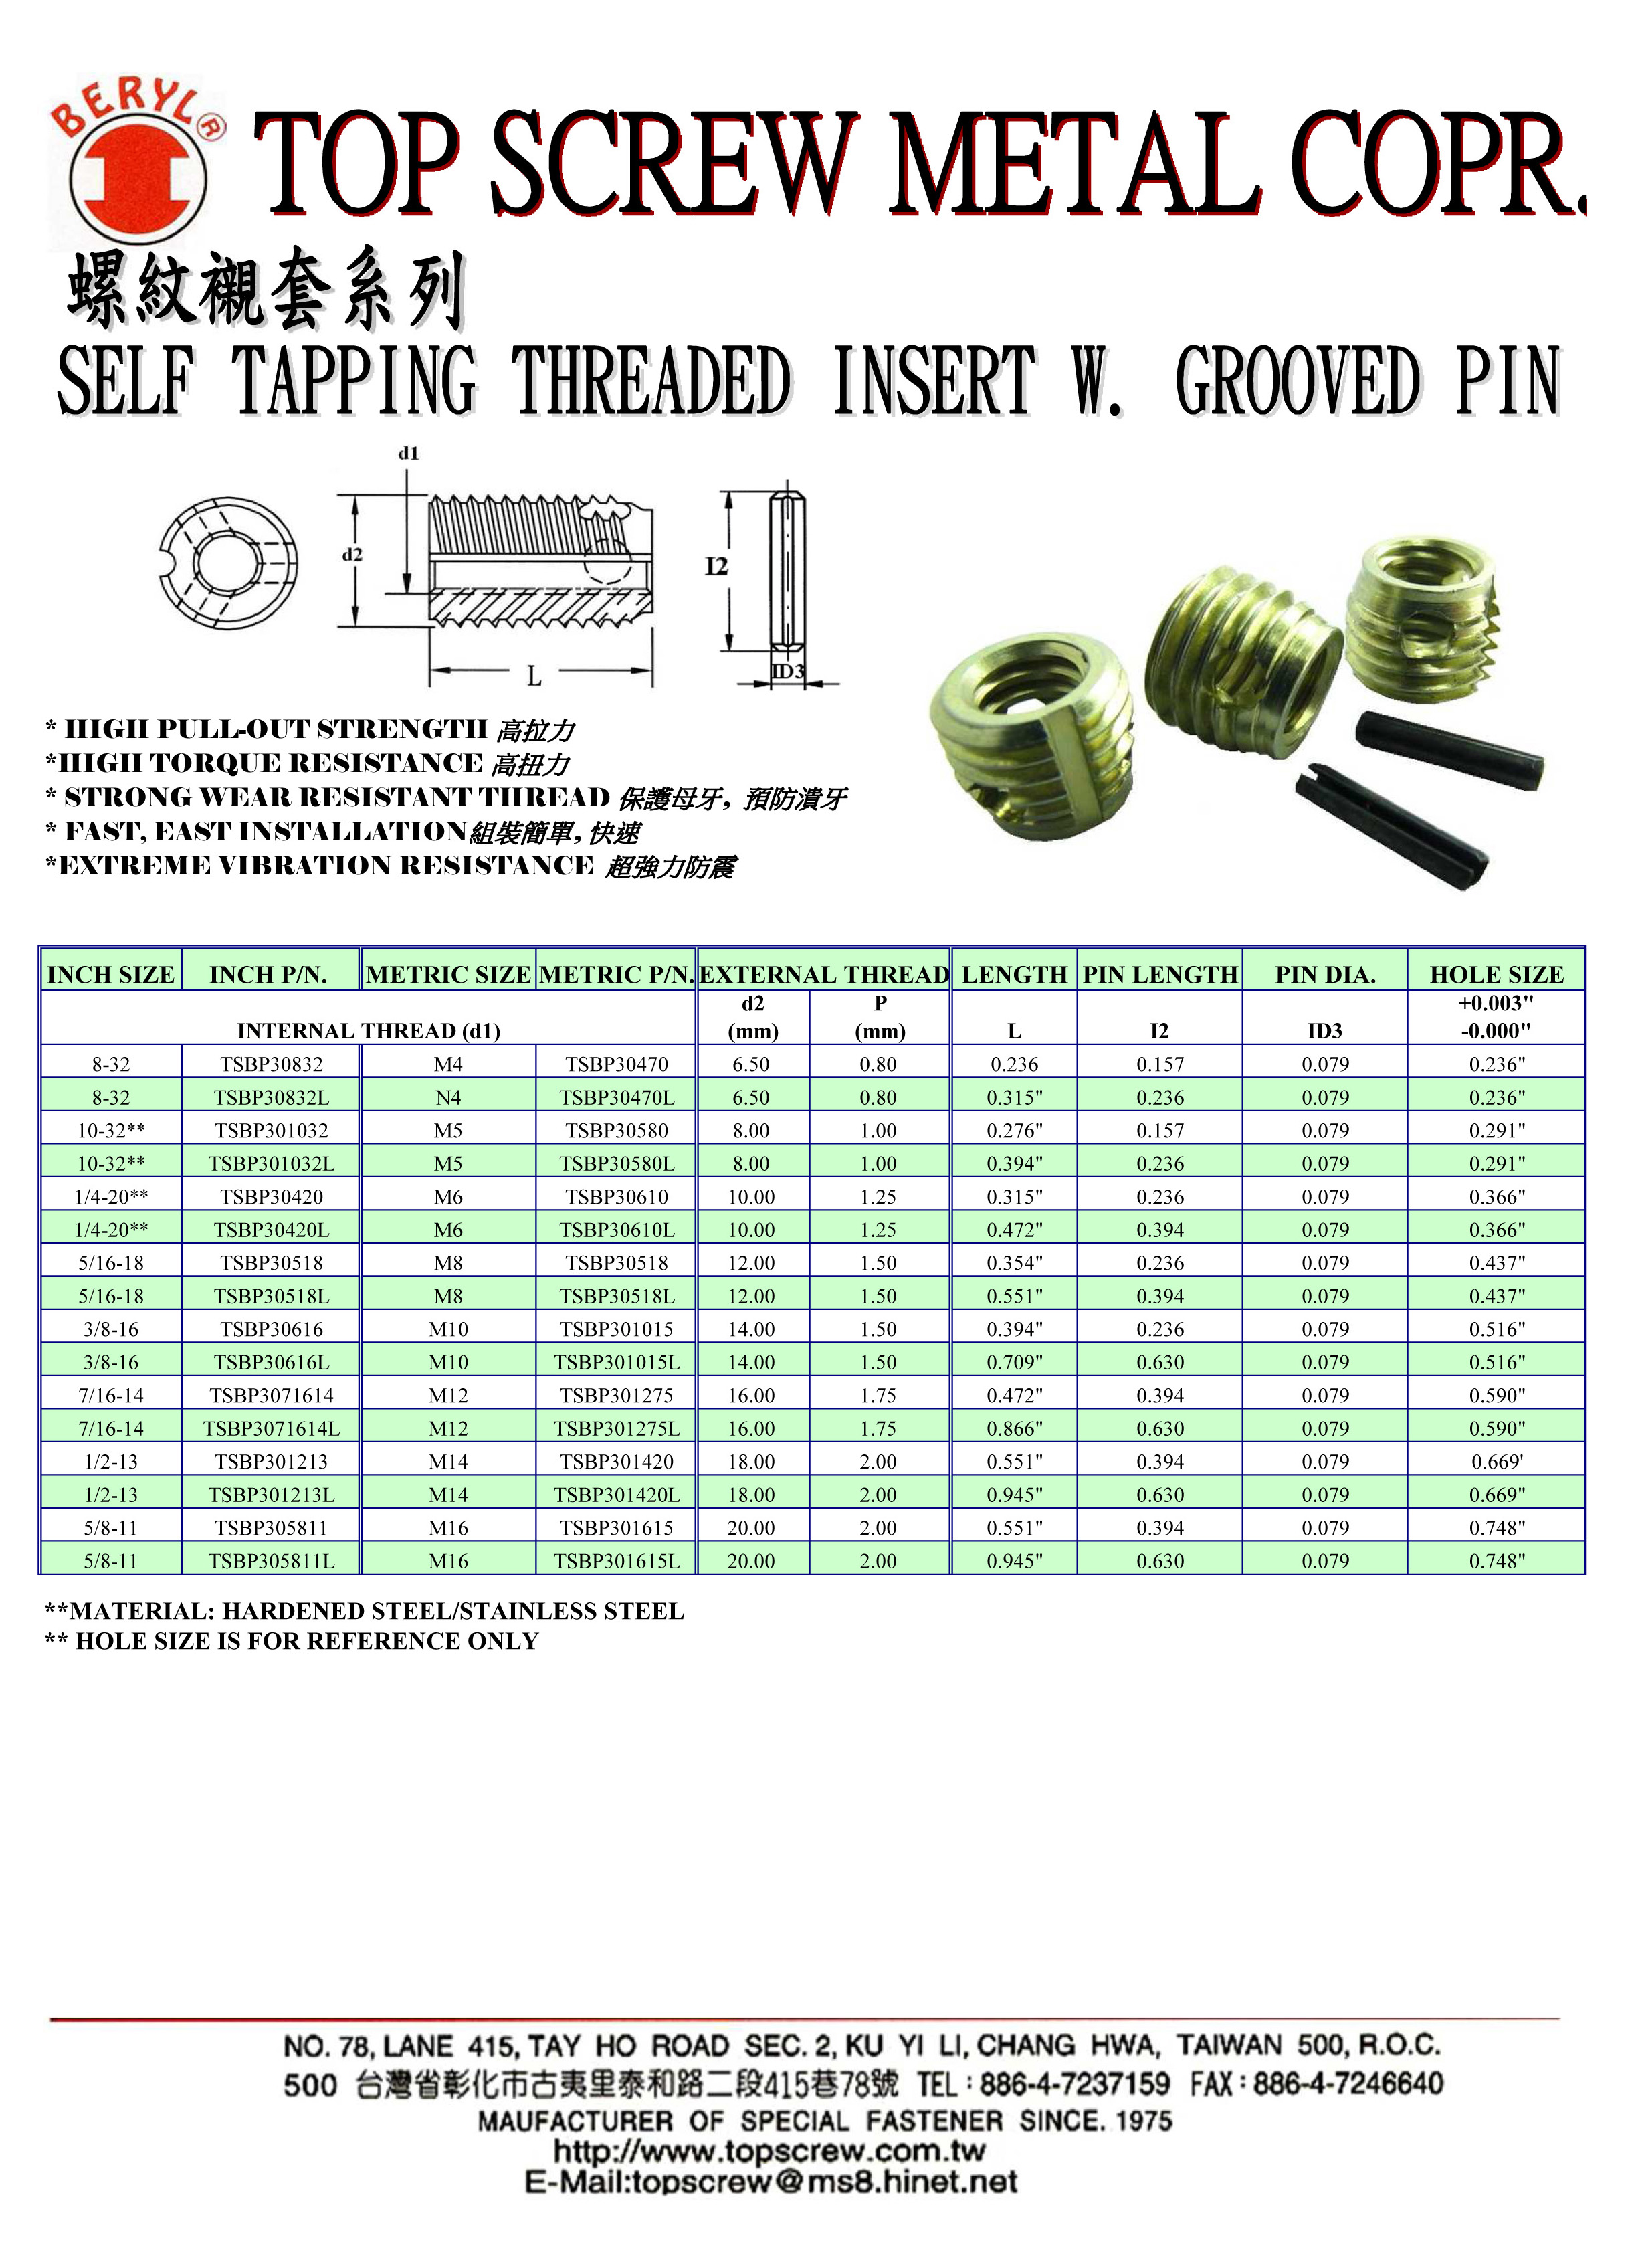 self tapping threaded insert,threaded insert,stripped savior,insert,nut insert,self-threading inserts,self cutting threaded insert,self tapping inserts,self locking inserts,top screw